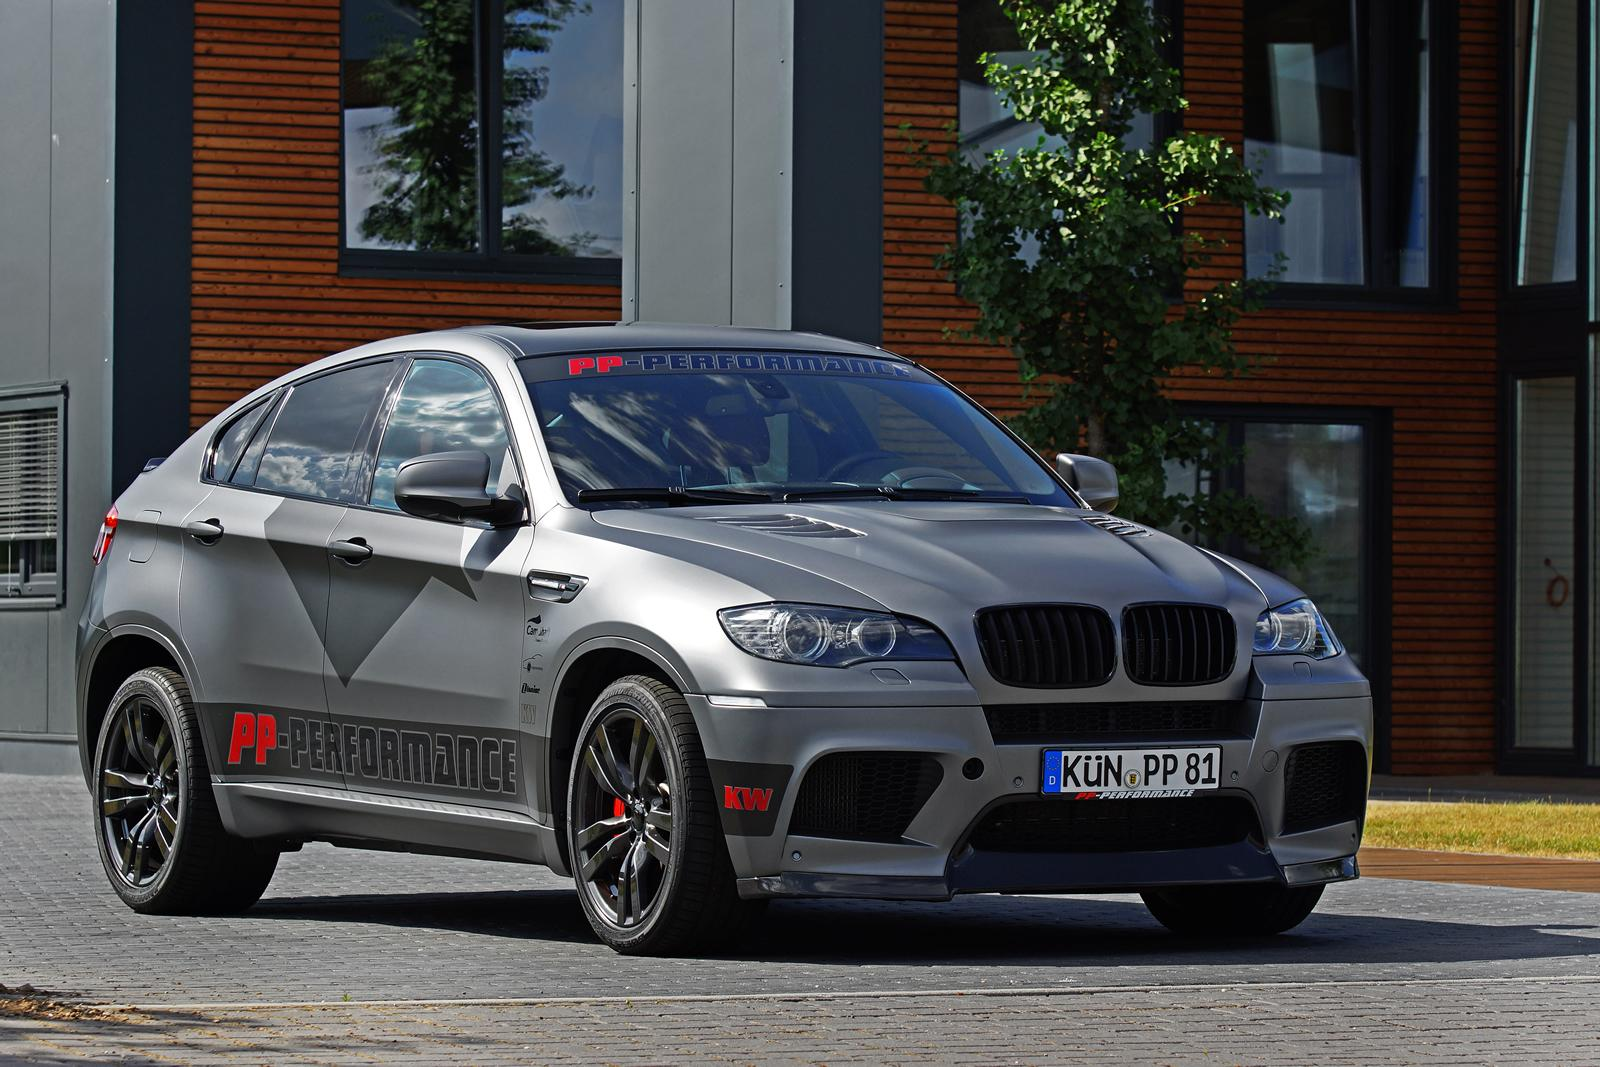 Pp Performance Bmw X6 M Gets Custom Wrap At Cam Shaft